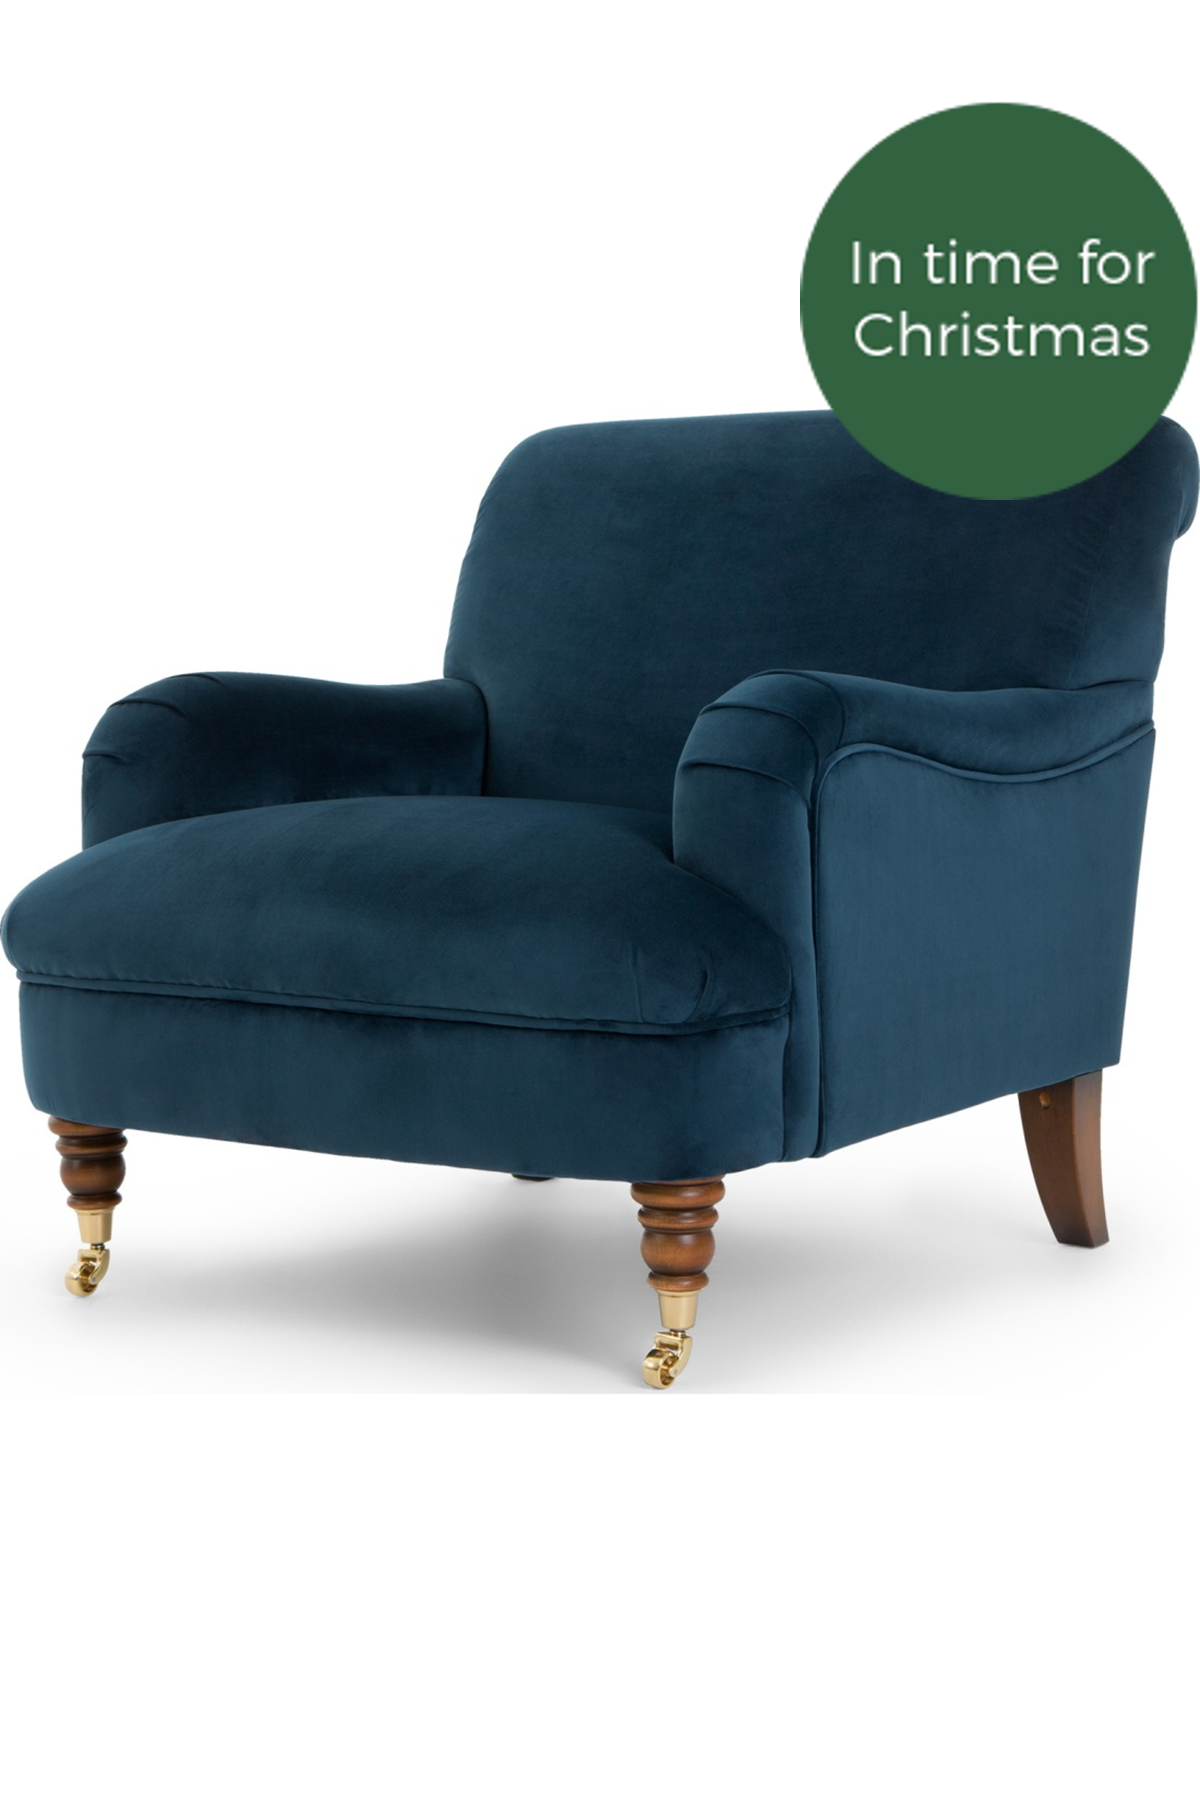 Best About The House Accent Armchair Midnight Blue Velvet 400 x 300